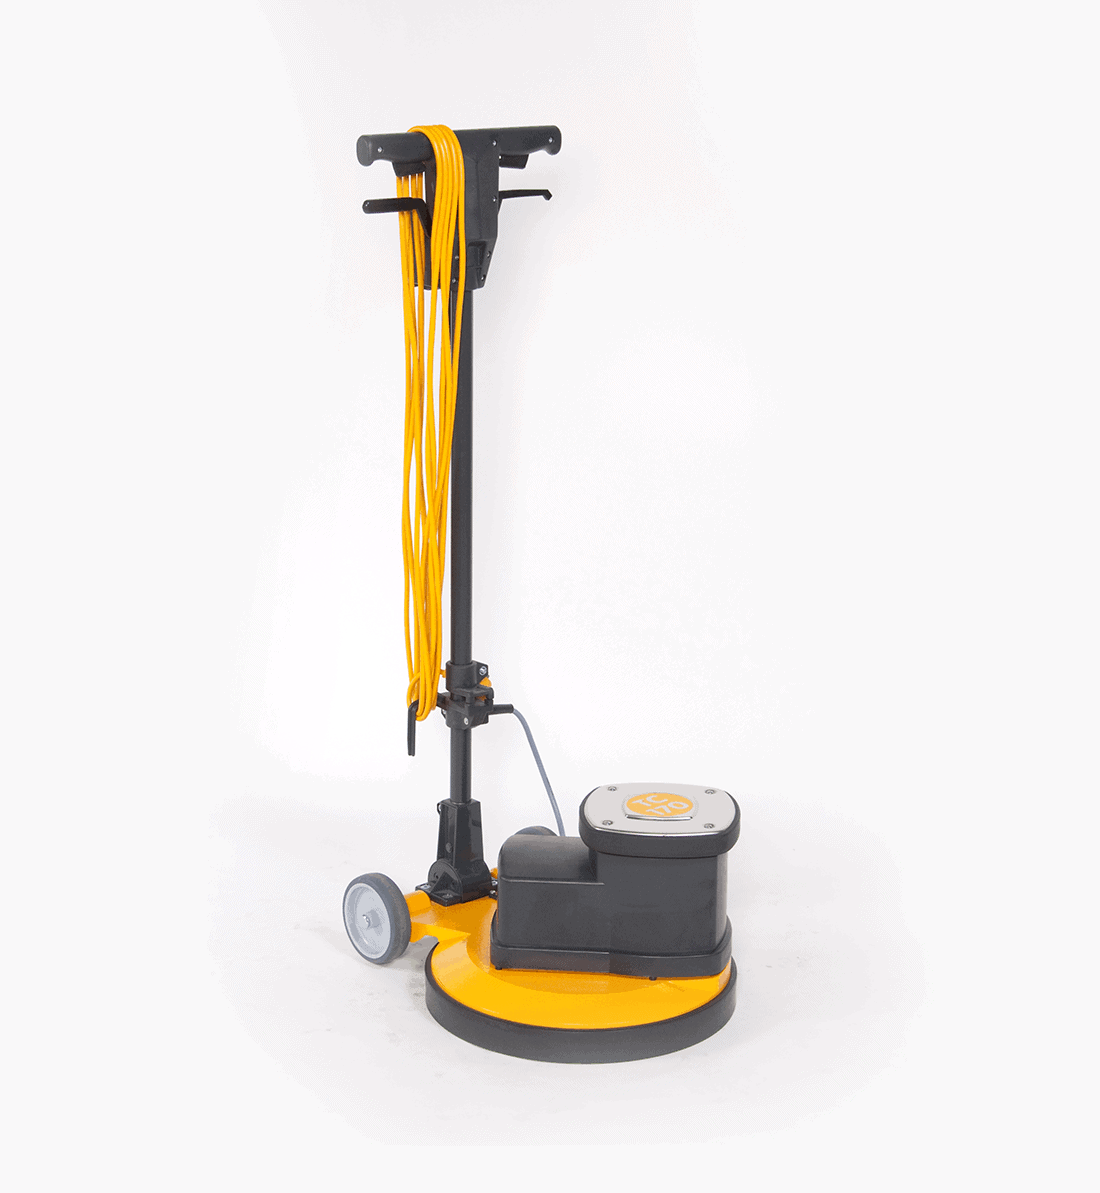 Spring Loaded Gear Driven Rotary Cleaning Machine